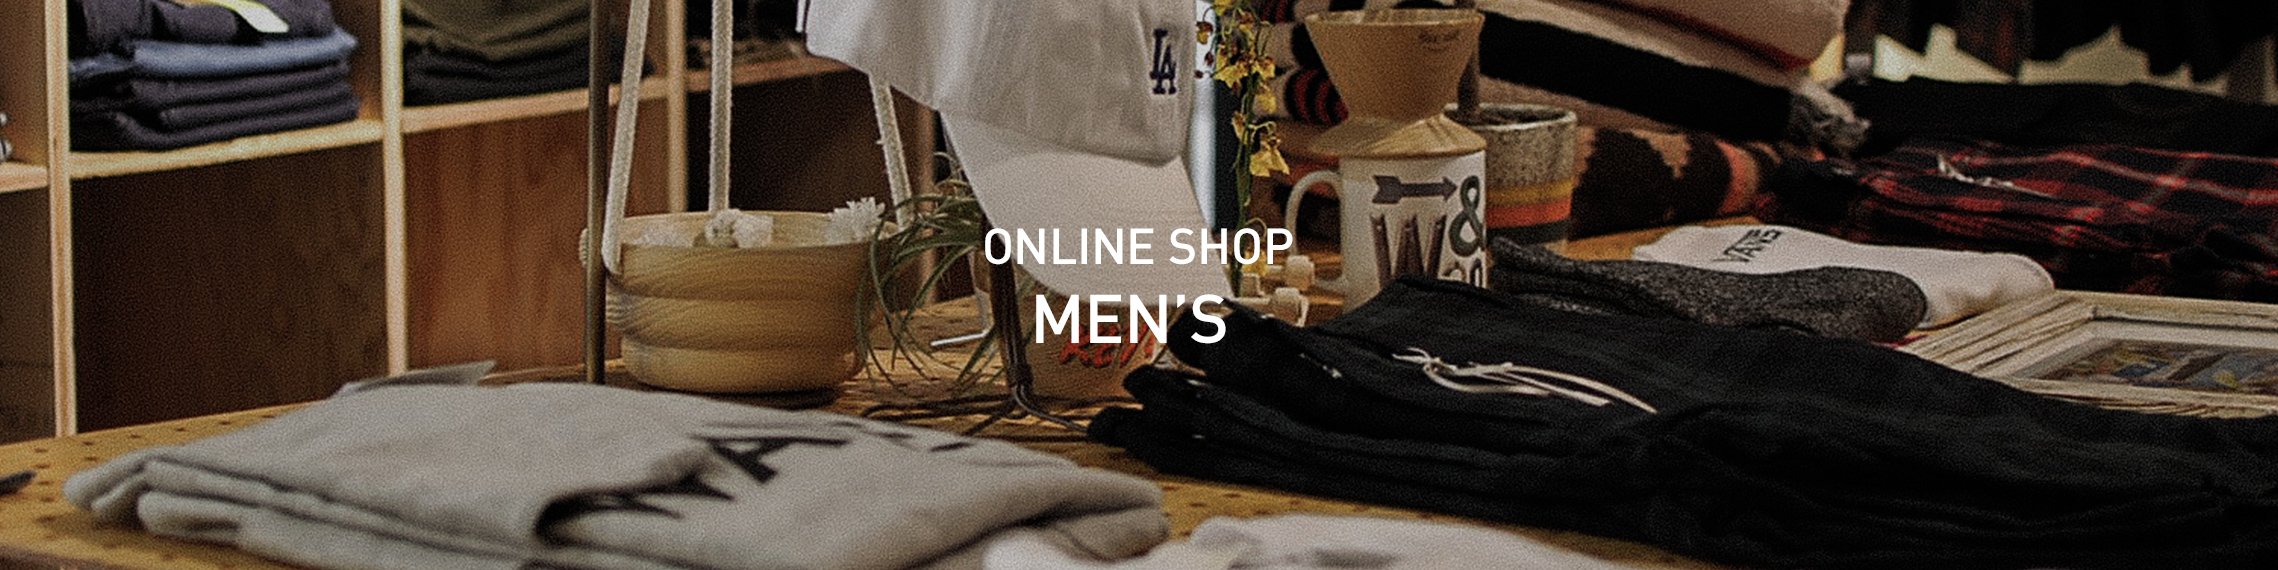 Online shop Men's